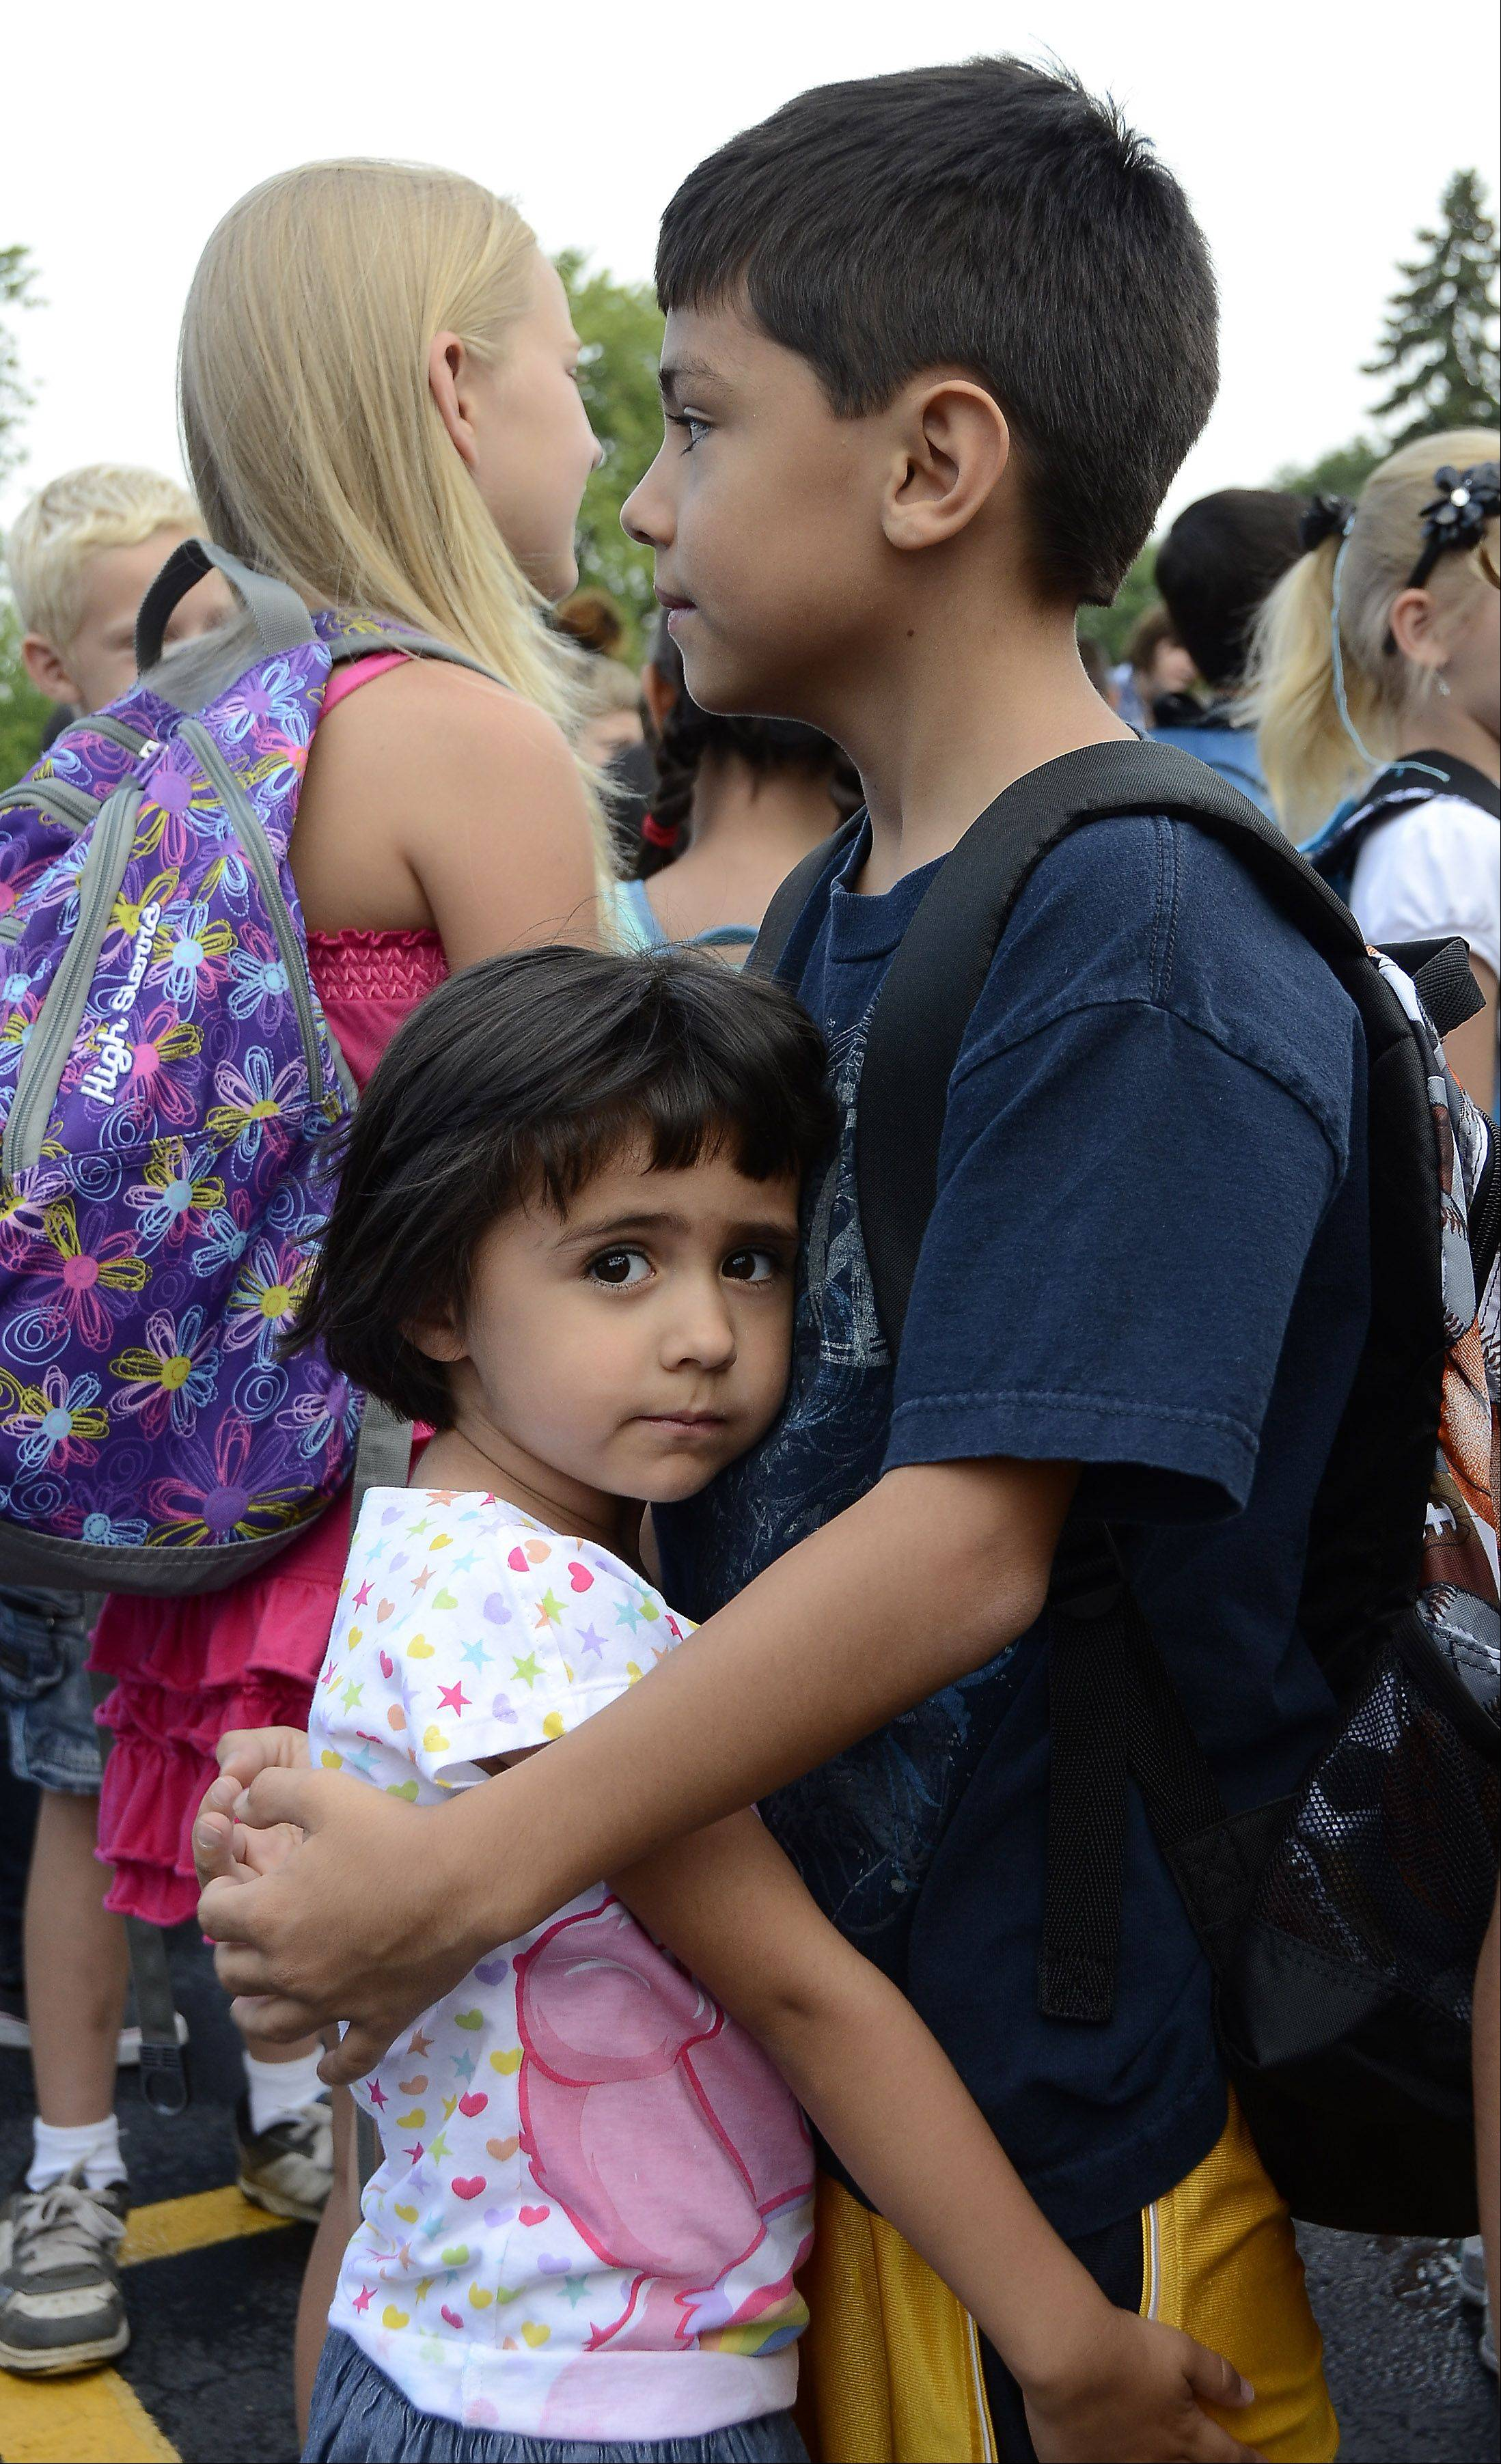 Coco Lomeli, 4, isn't quite ready for her brother, Christian, to leave her and go back to school. But Christian said he likes going to school year-round because he sees his friends all the time.